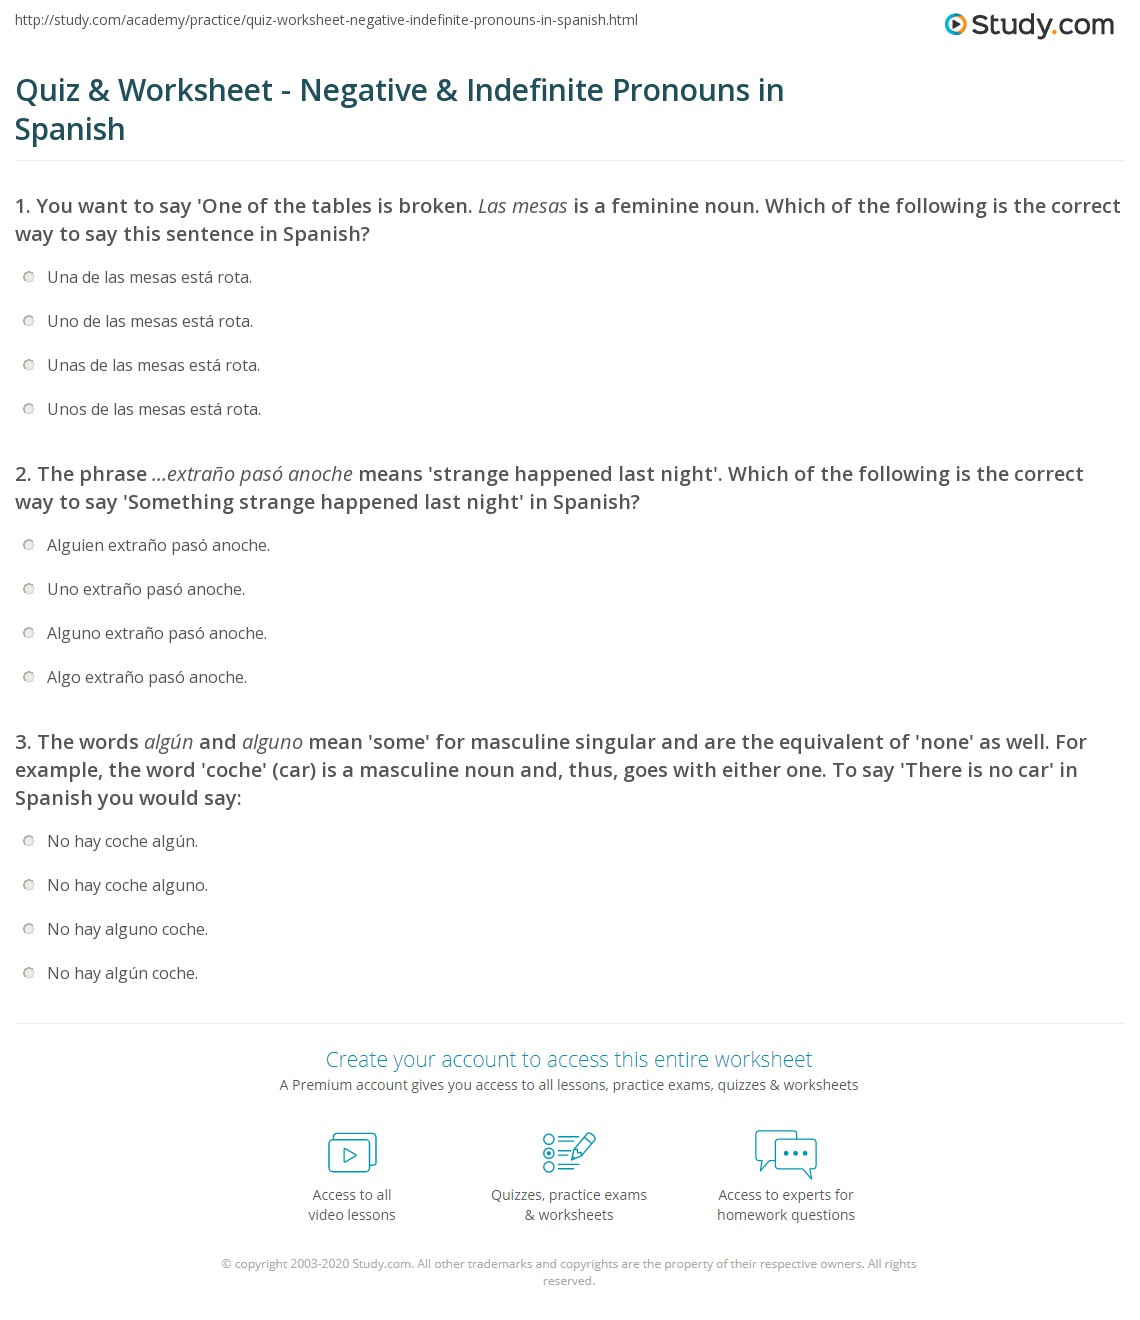 Worksheet Example Of Indefinite Pronoun In A Sentence quiz worksheet negative indefinite pronouns in spanish print worksheet